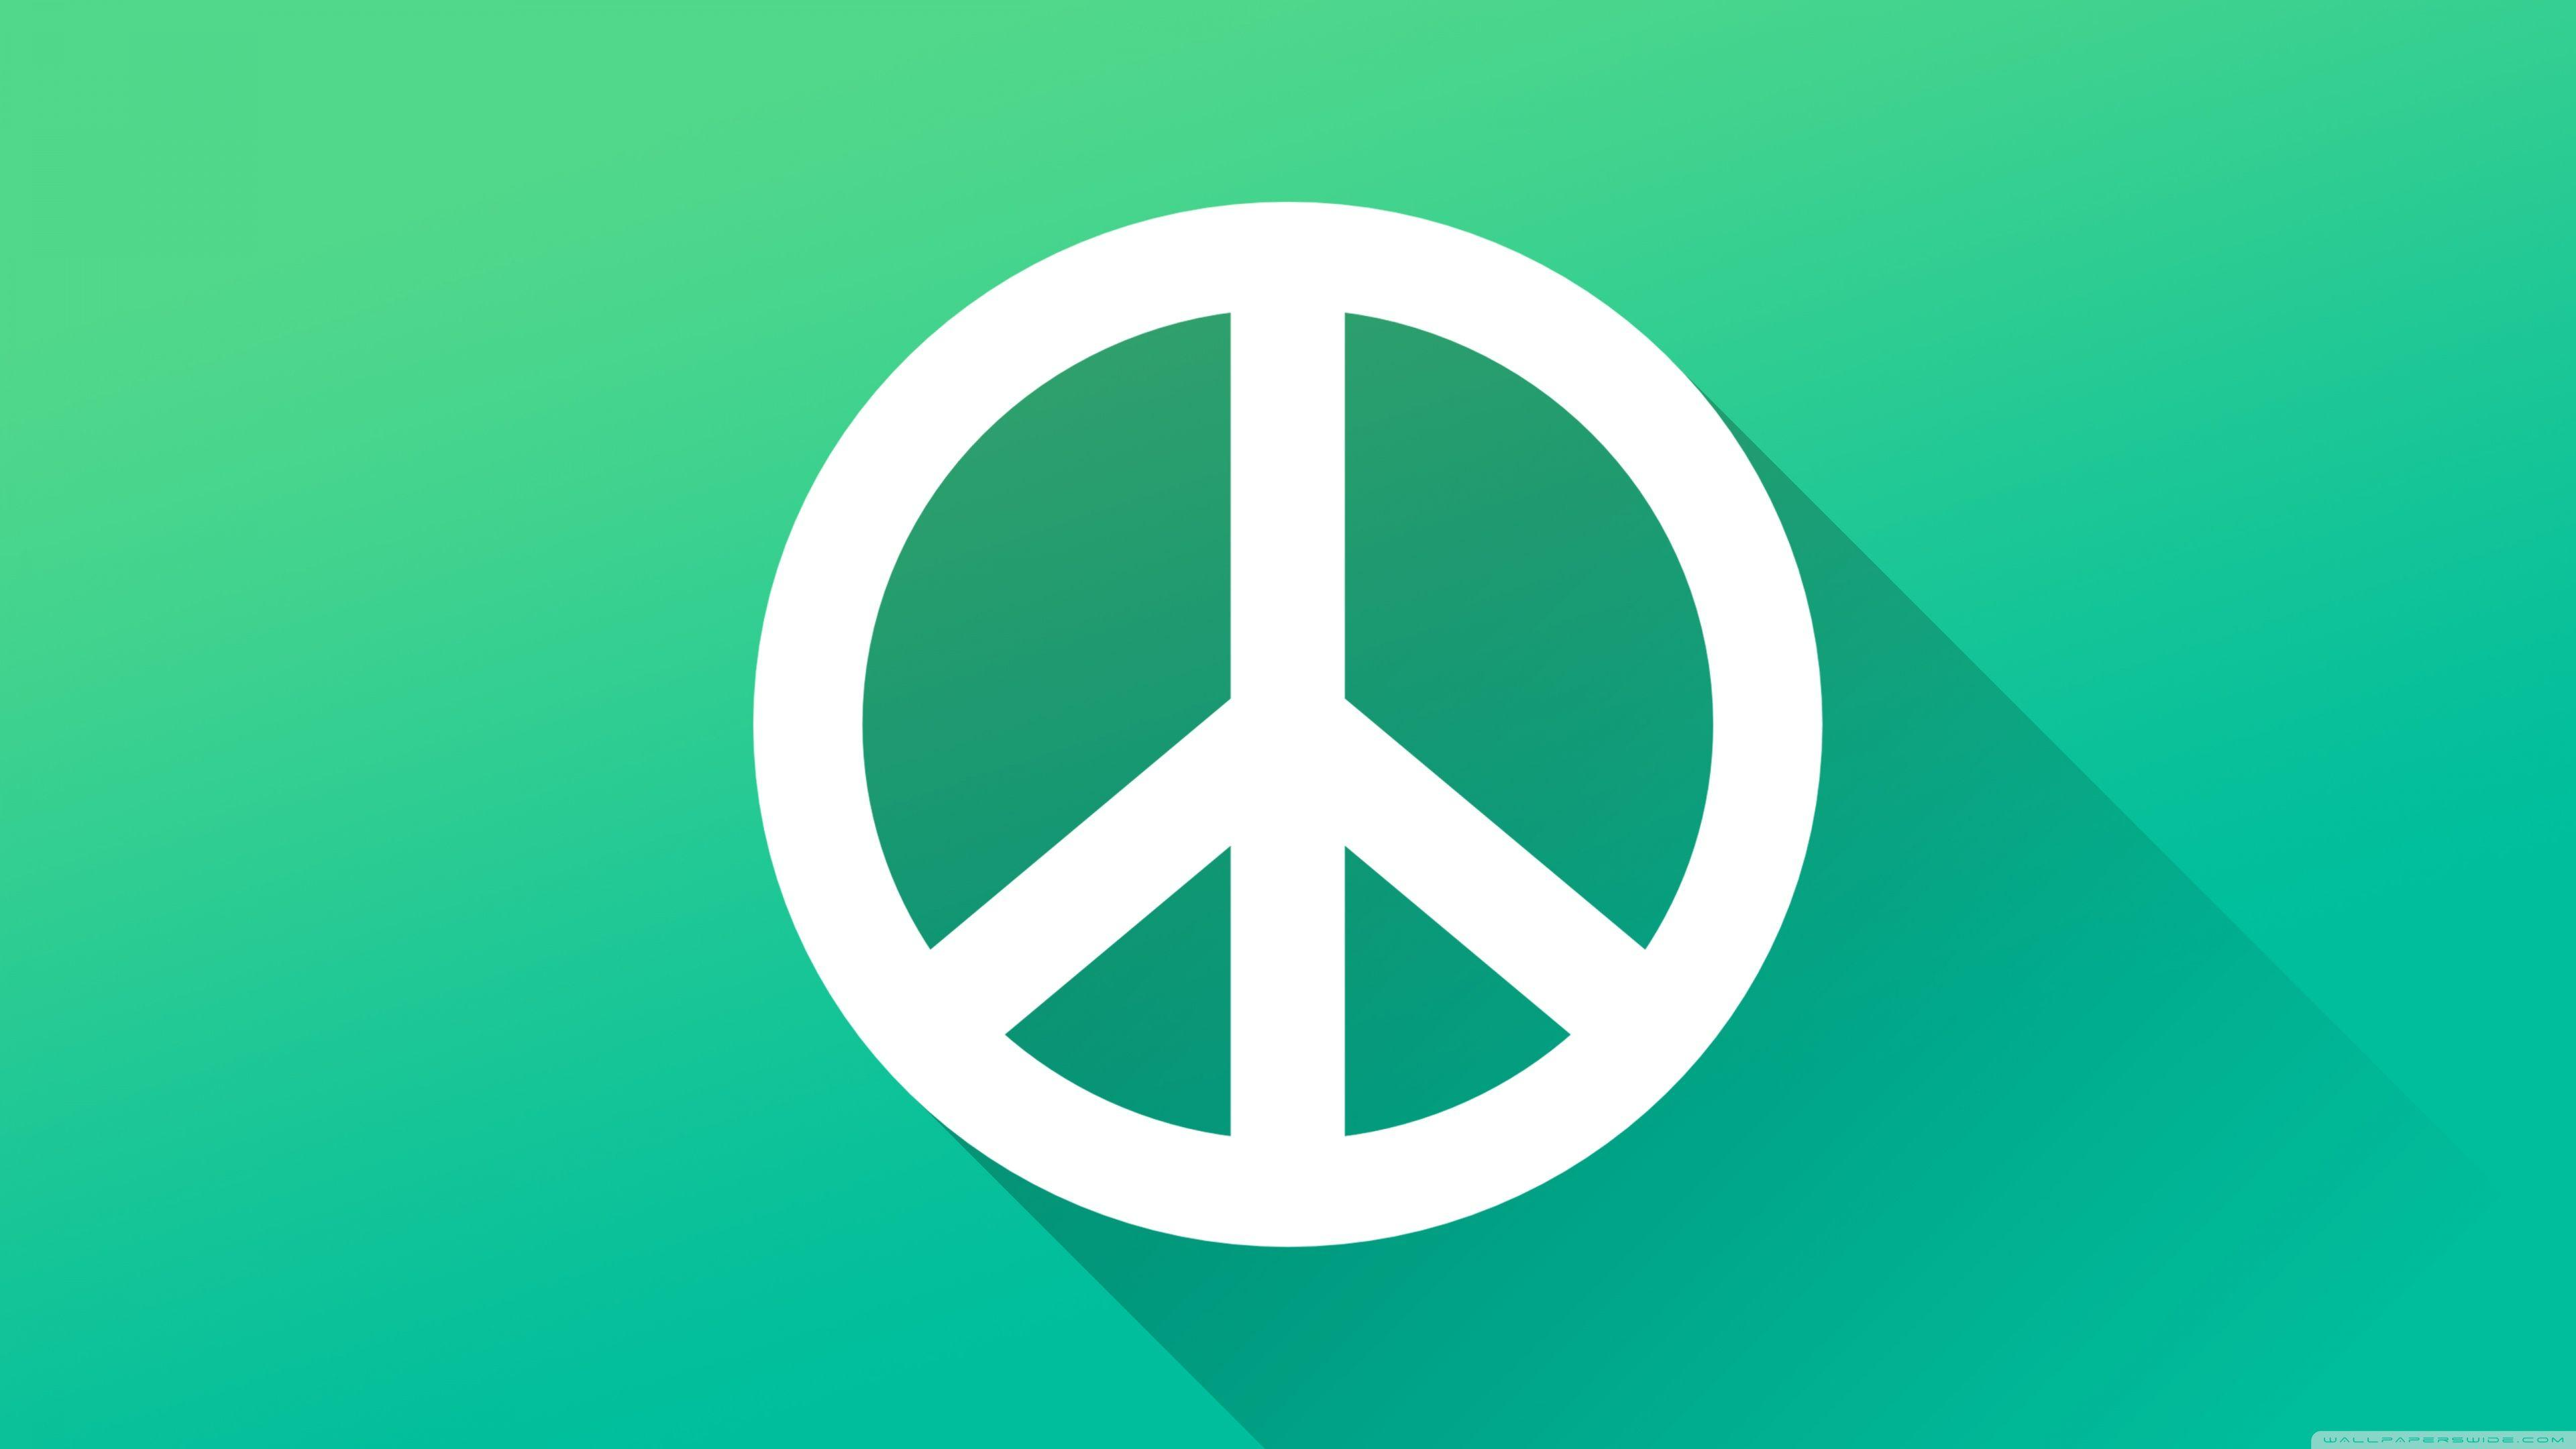 Peace Wallpapers 4k